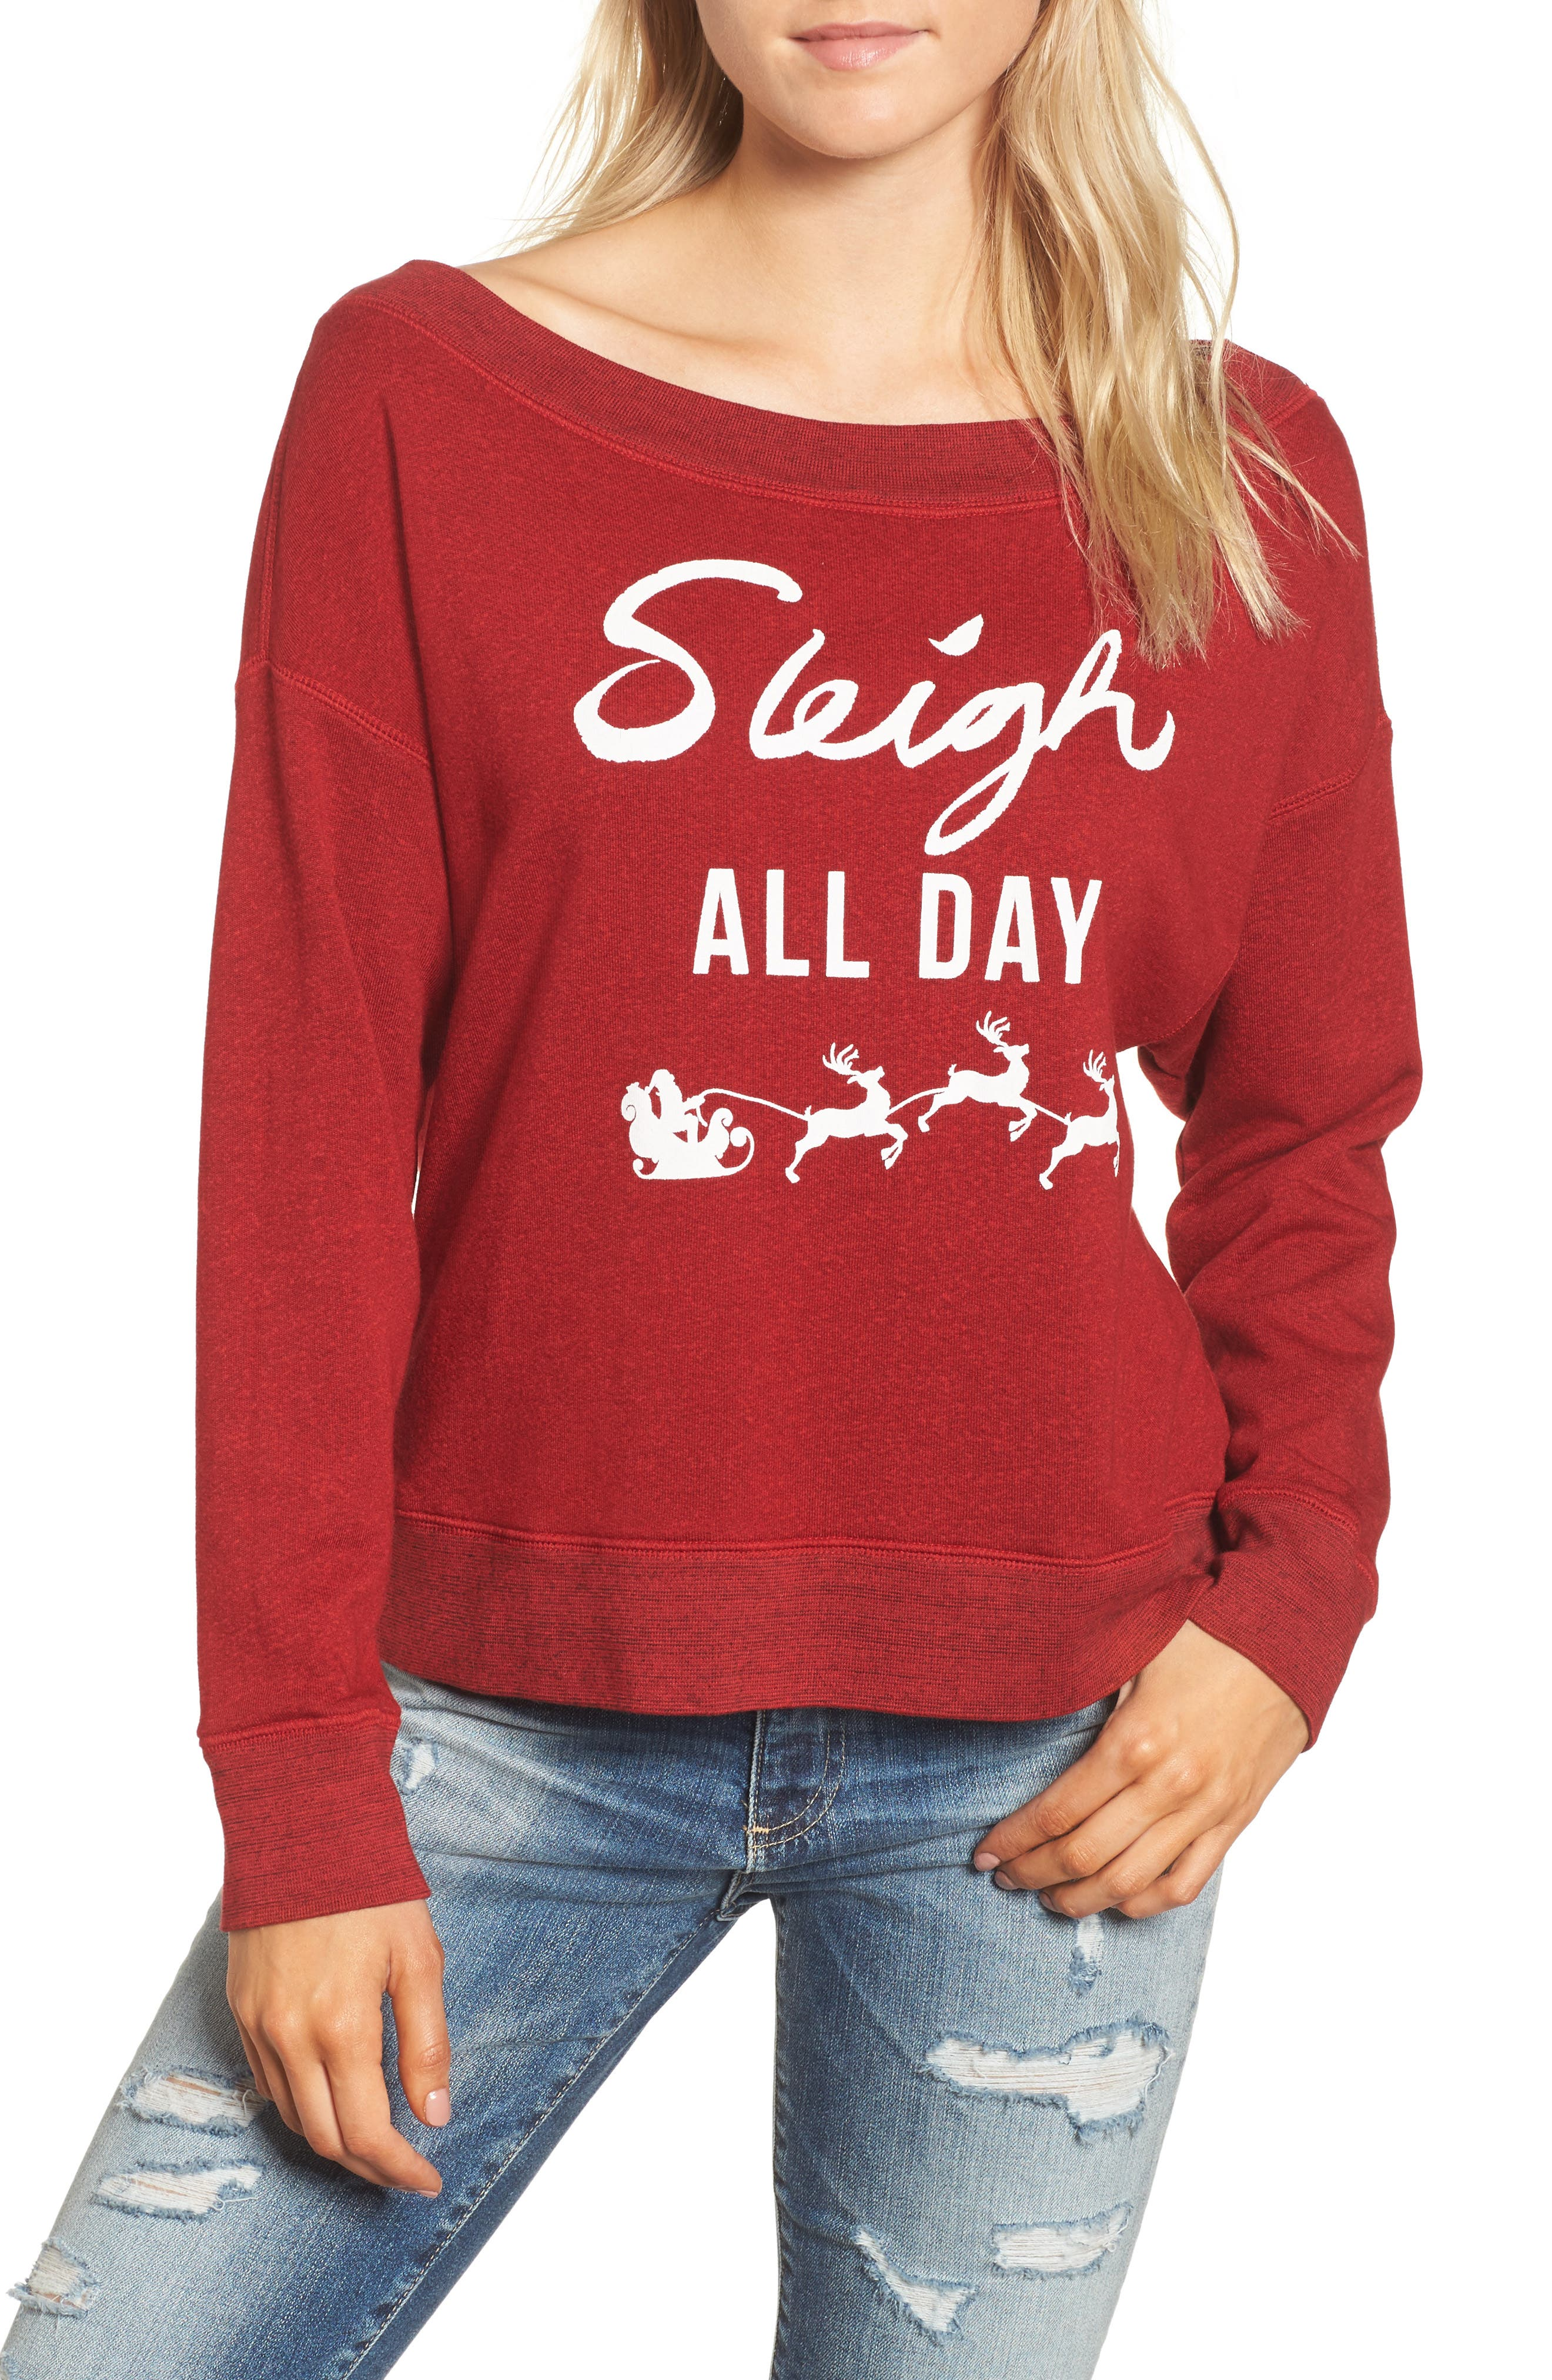 Alternate Image 1 Selected - Sundry Sleigh All Day Sweatshirt (Nordstrom Exclusive)